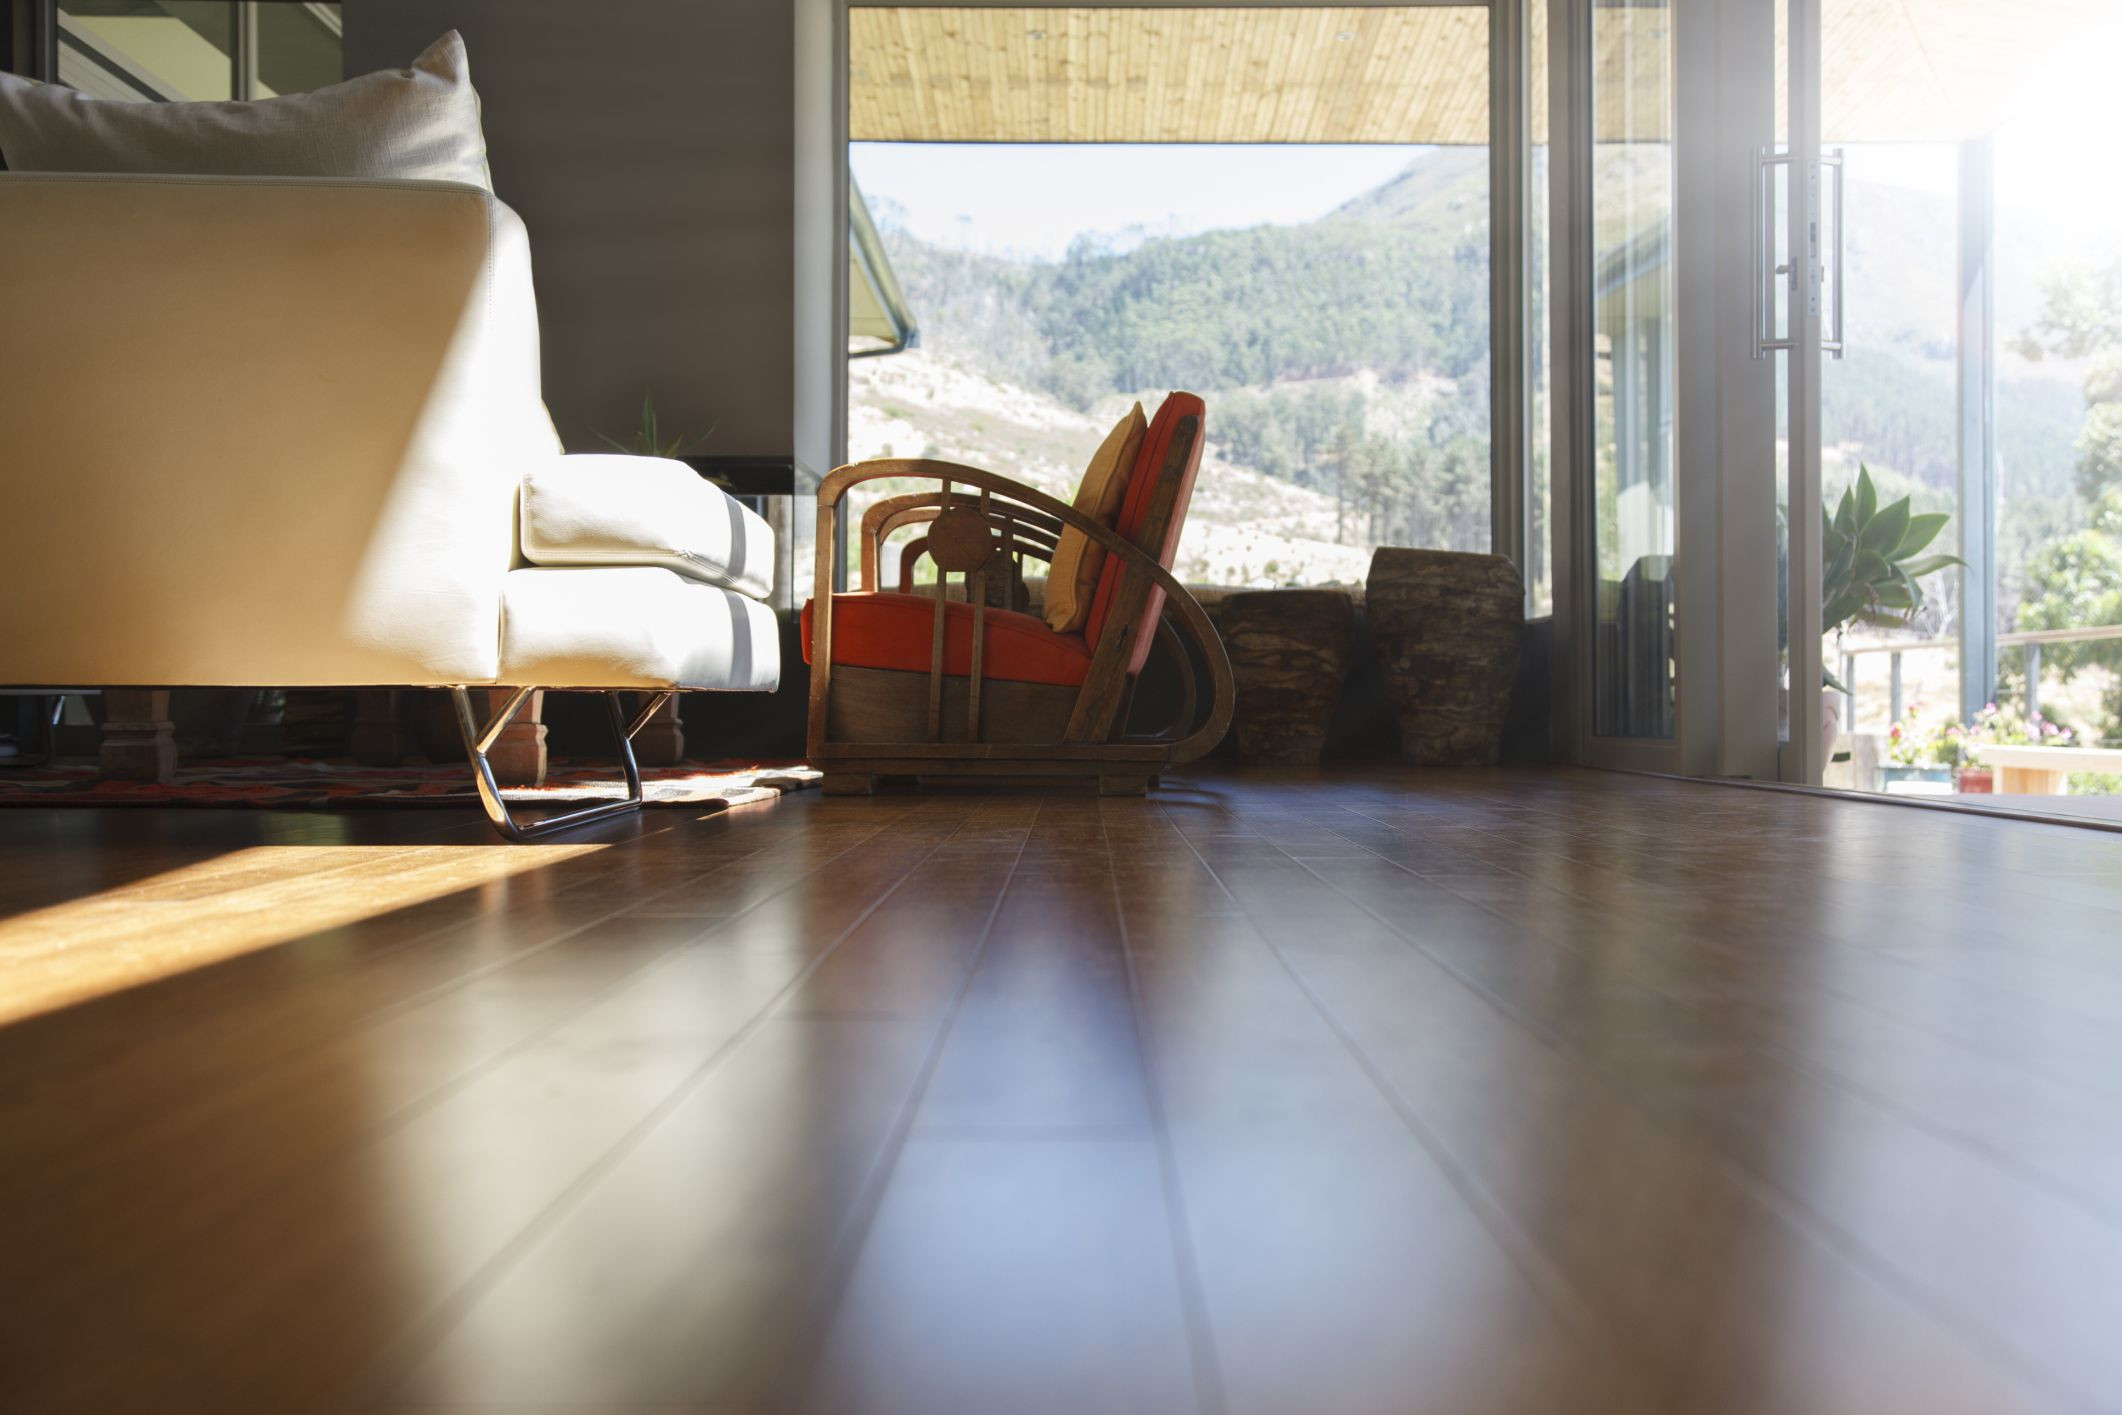 ash hardwood flooring pros and cons of pros and cons of bellawood flooring from lumber liquidators inside exotic hardwood flooring 525439899 56a49d3a3df78cf77283453d